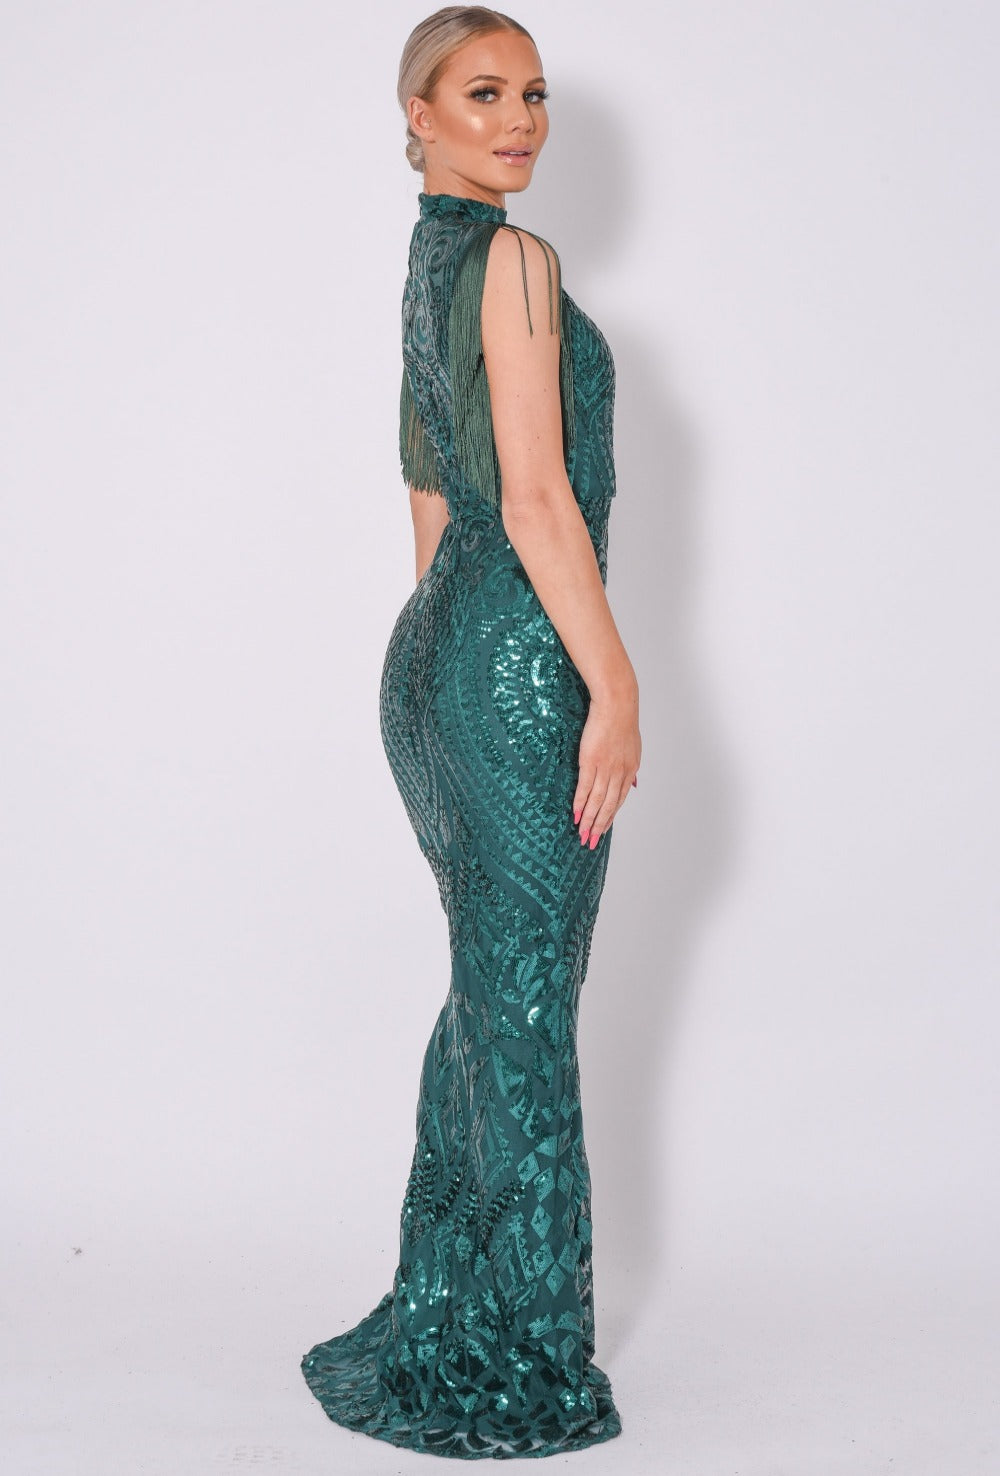 Magic Vip Green Luxe Tassel Fringe Sequin Embellished Illusion Maxi Dress